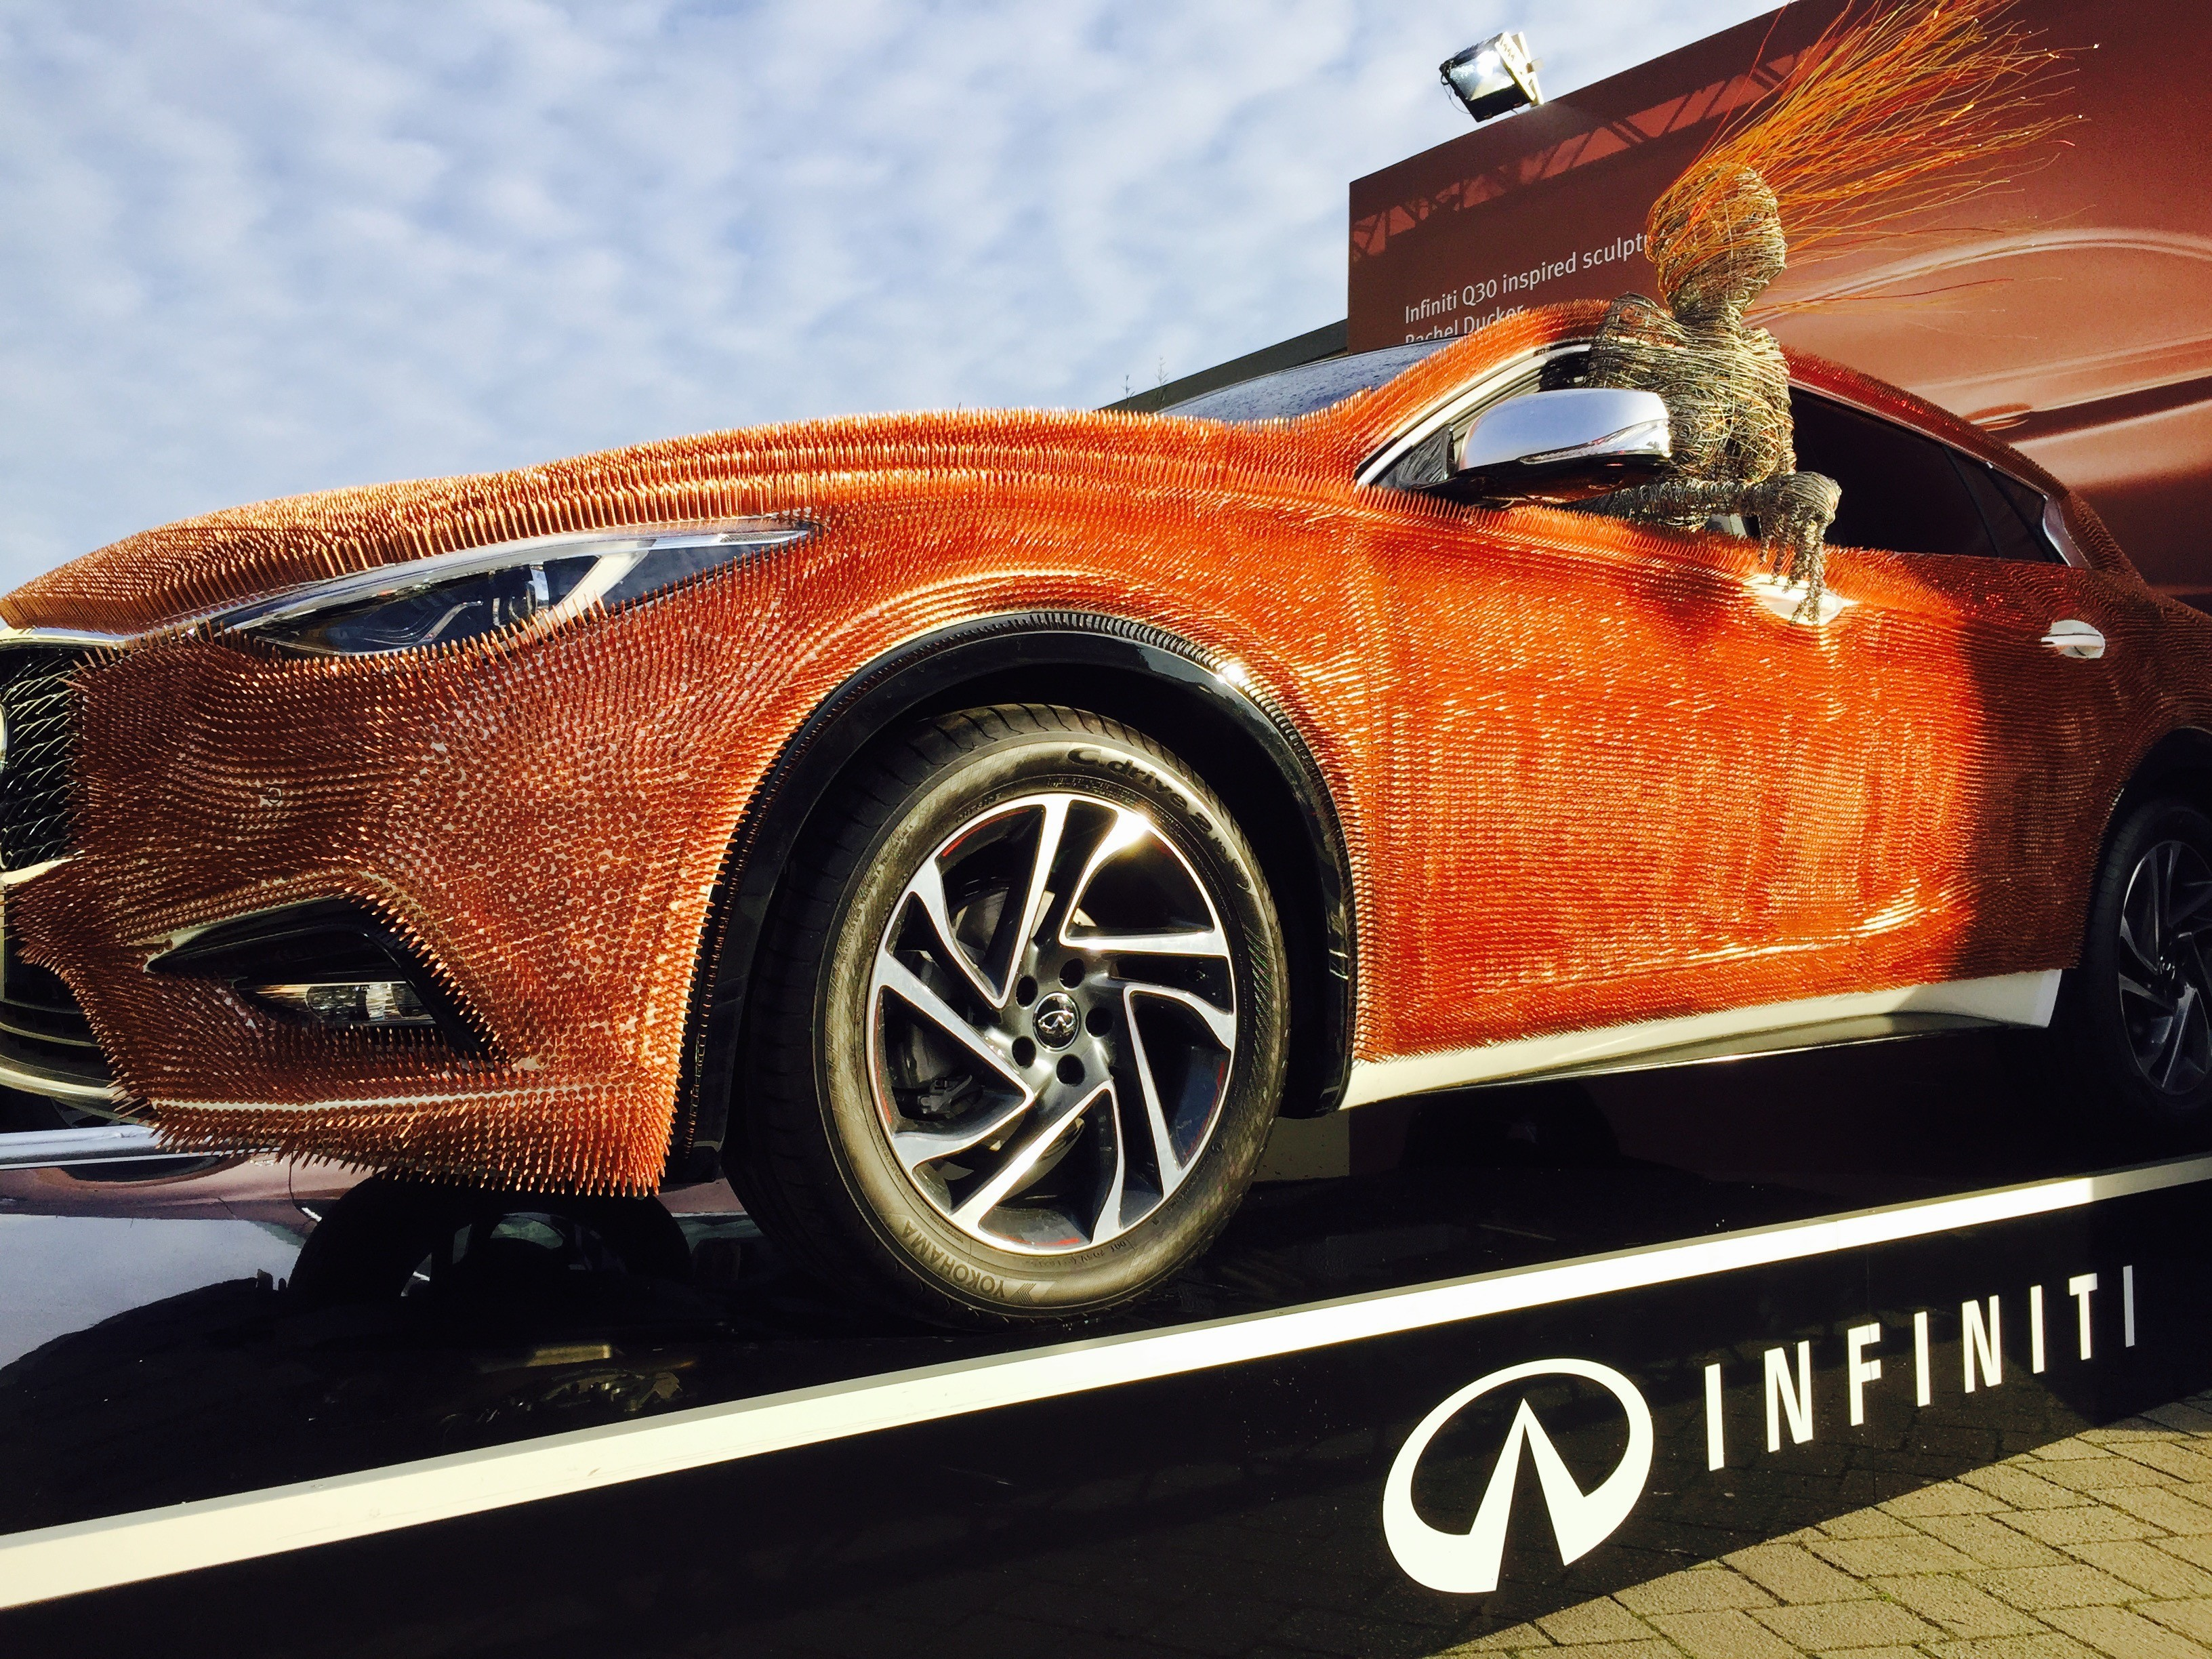 q30 car art demands attention at london art fair infiniti qx30 forum